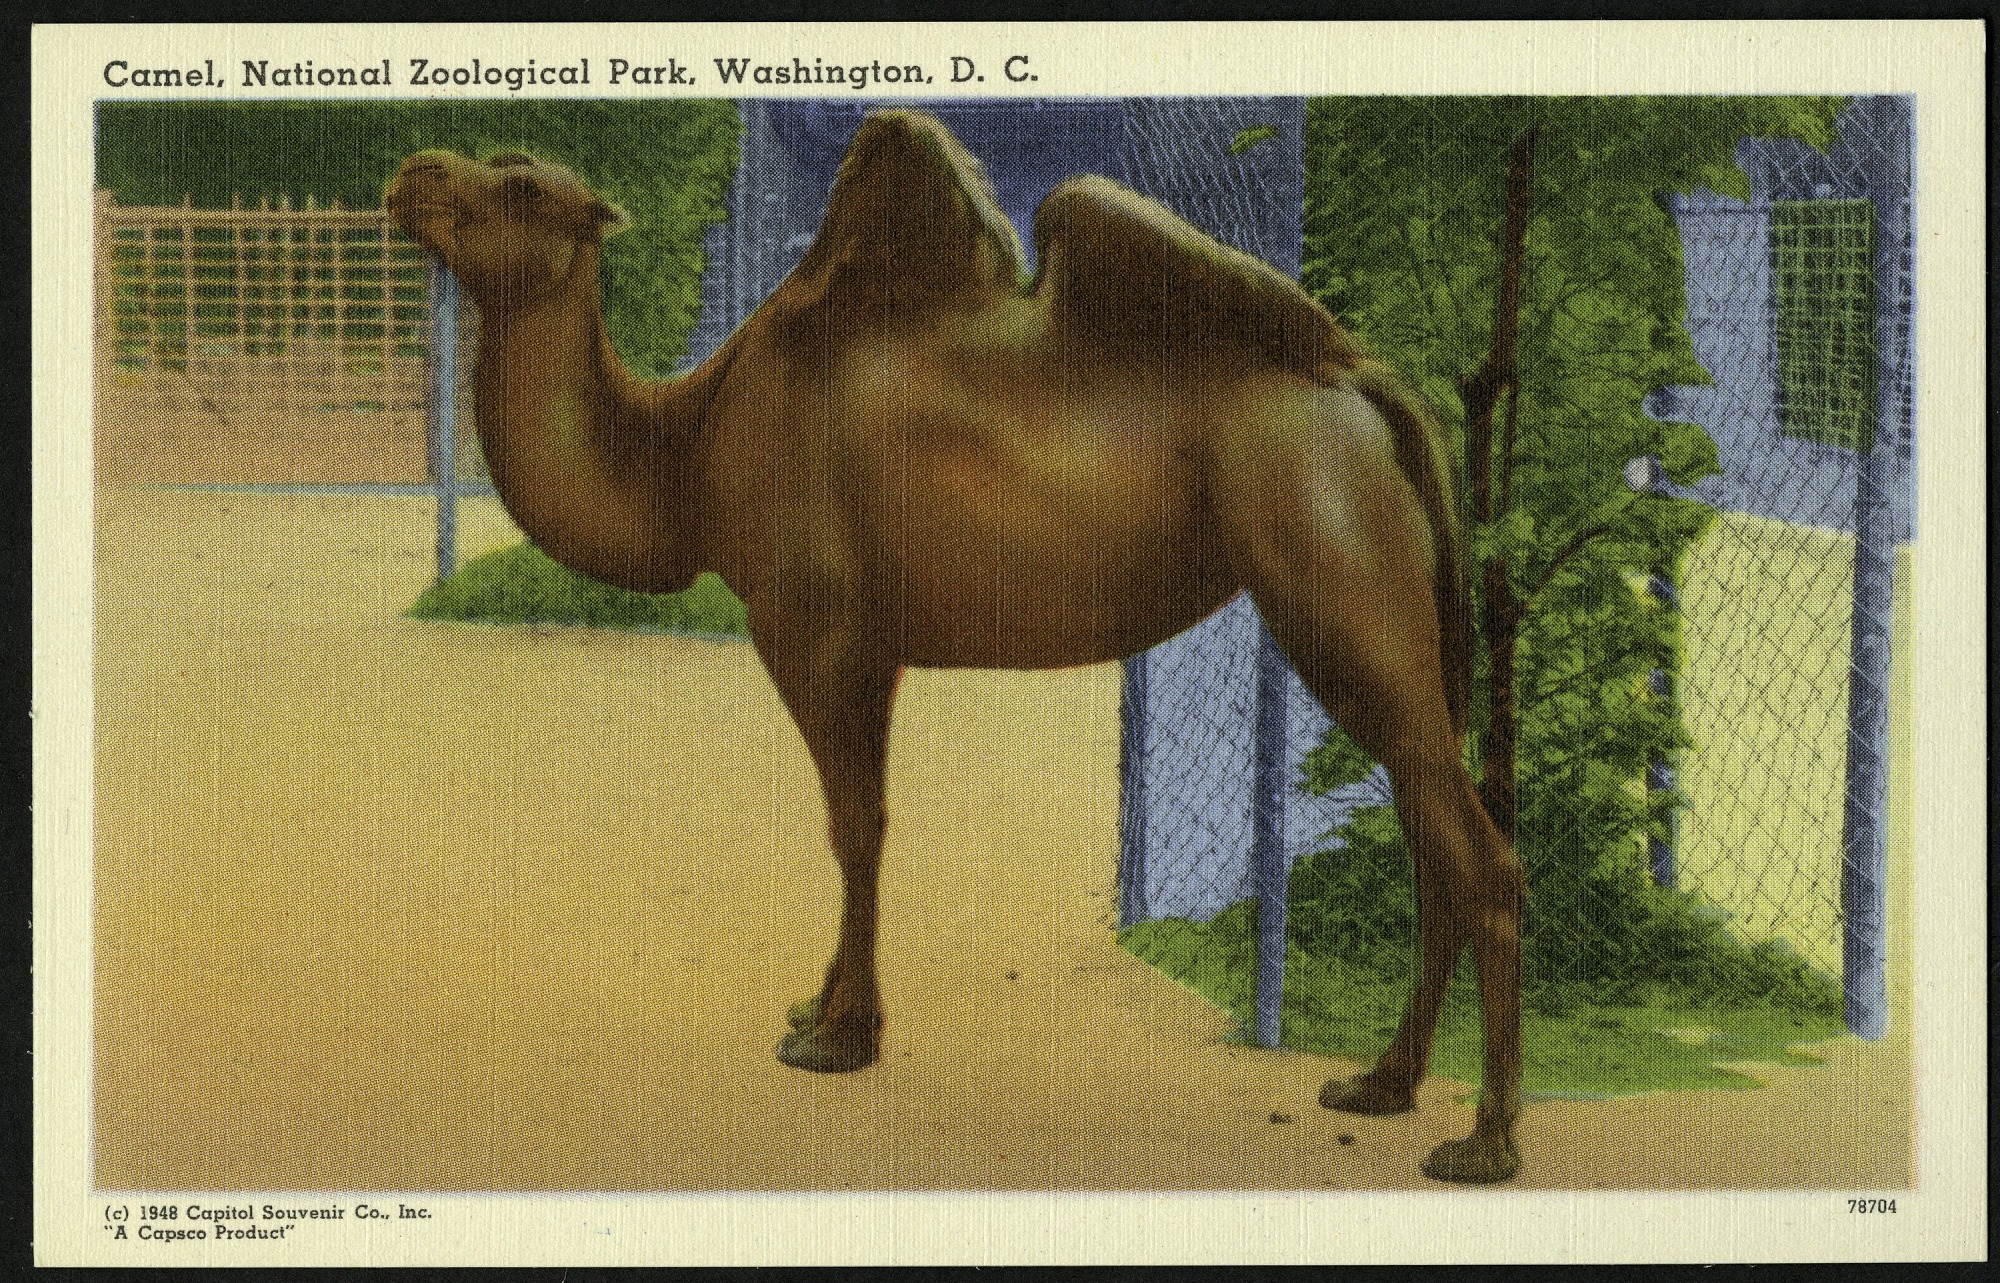 Blank Postcard of a Camel at the Zoo